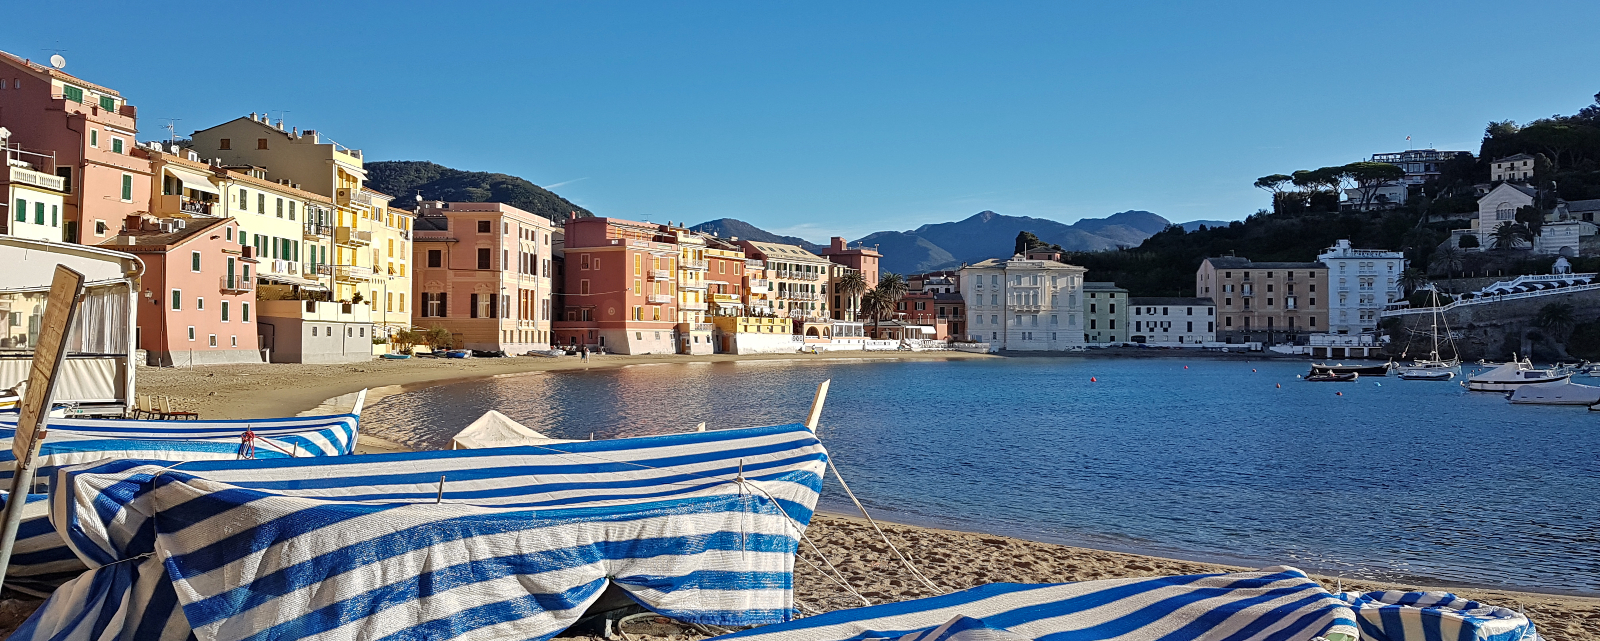 Discover the perfect base to visit Cinque Terre and Portofino